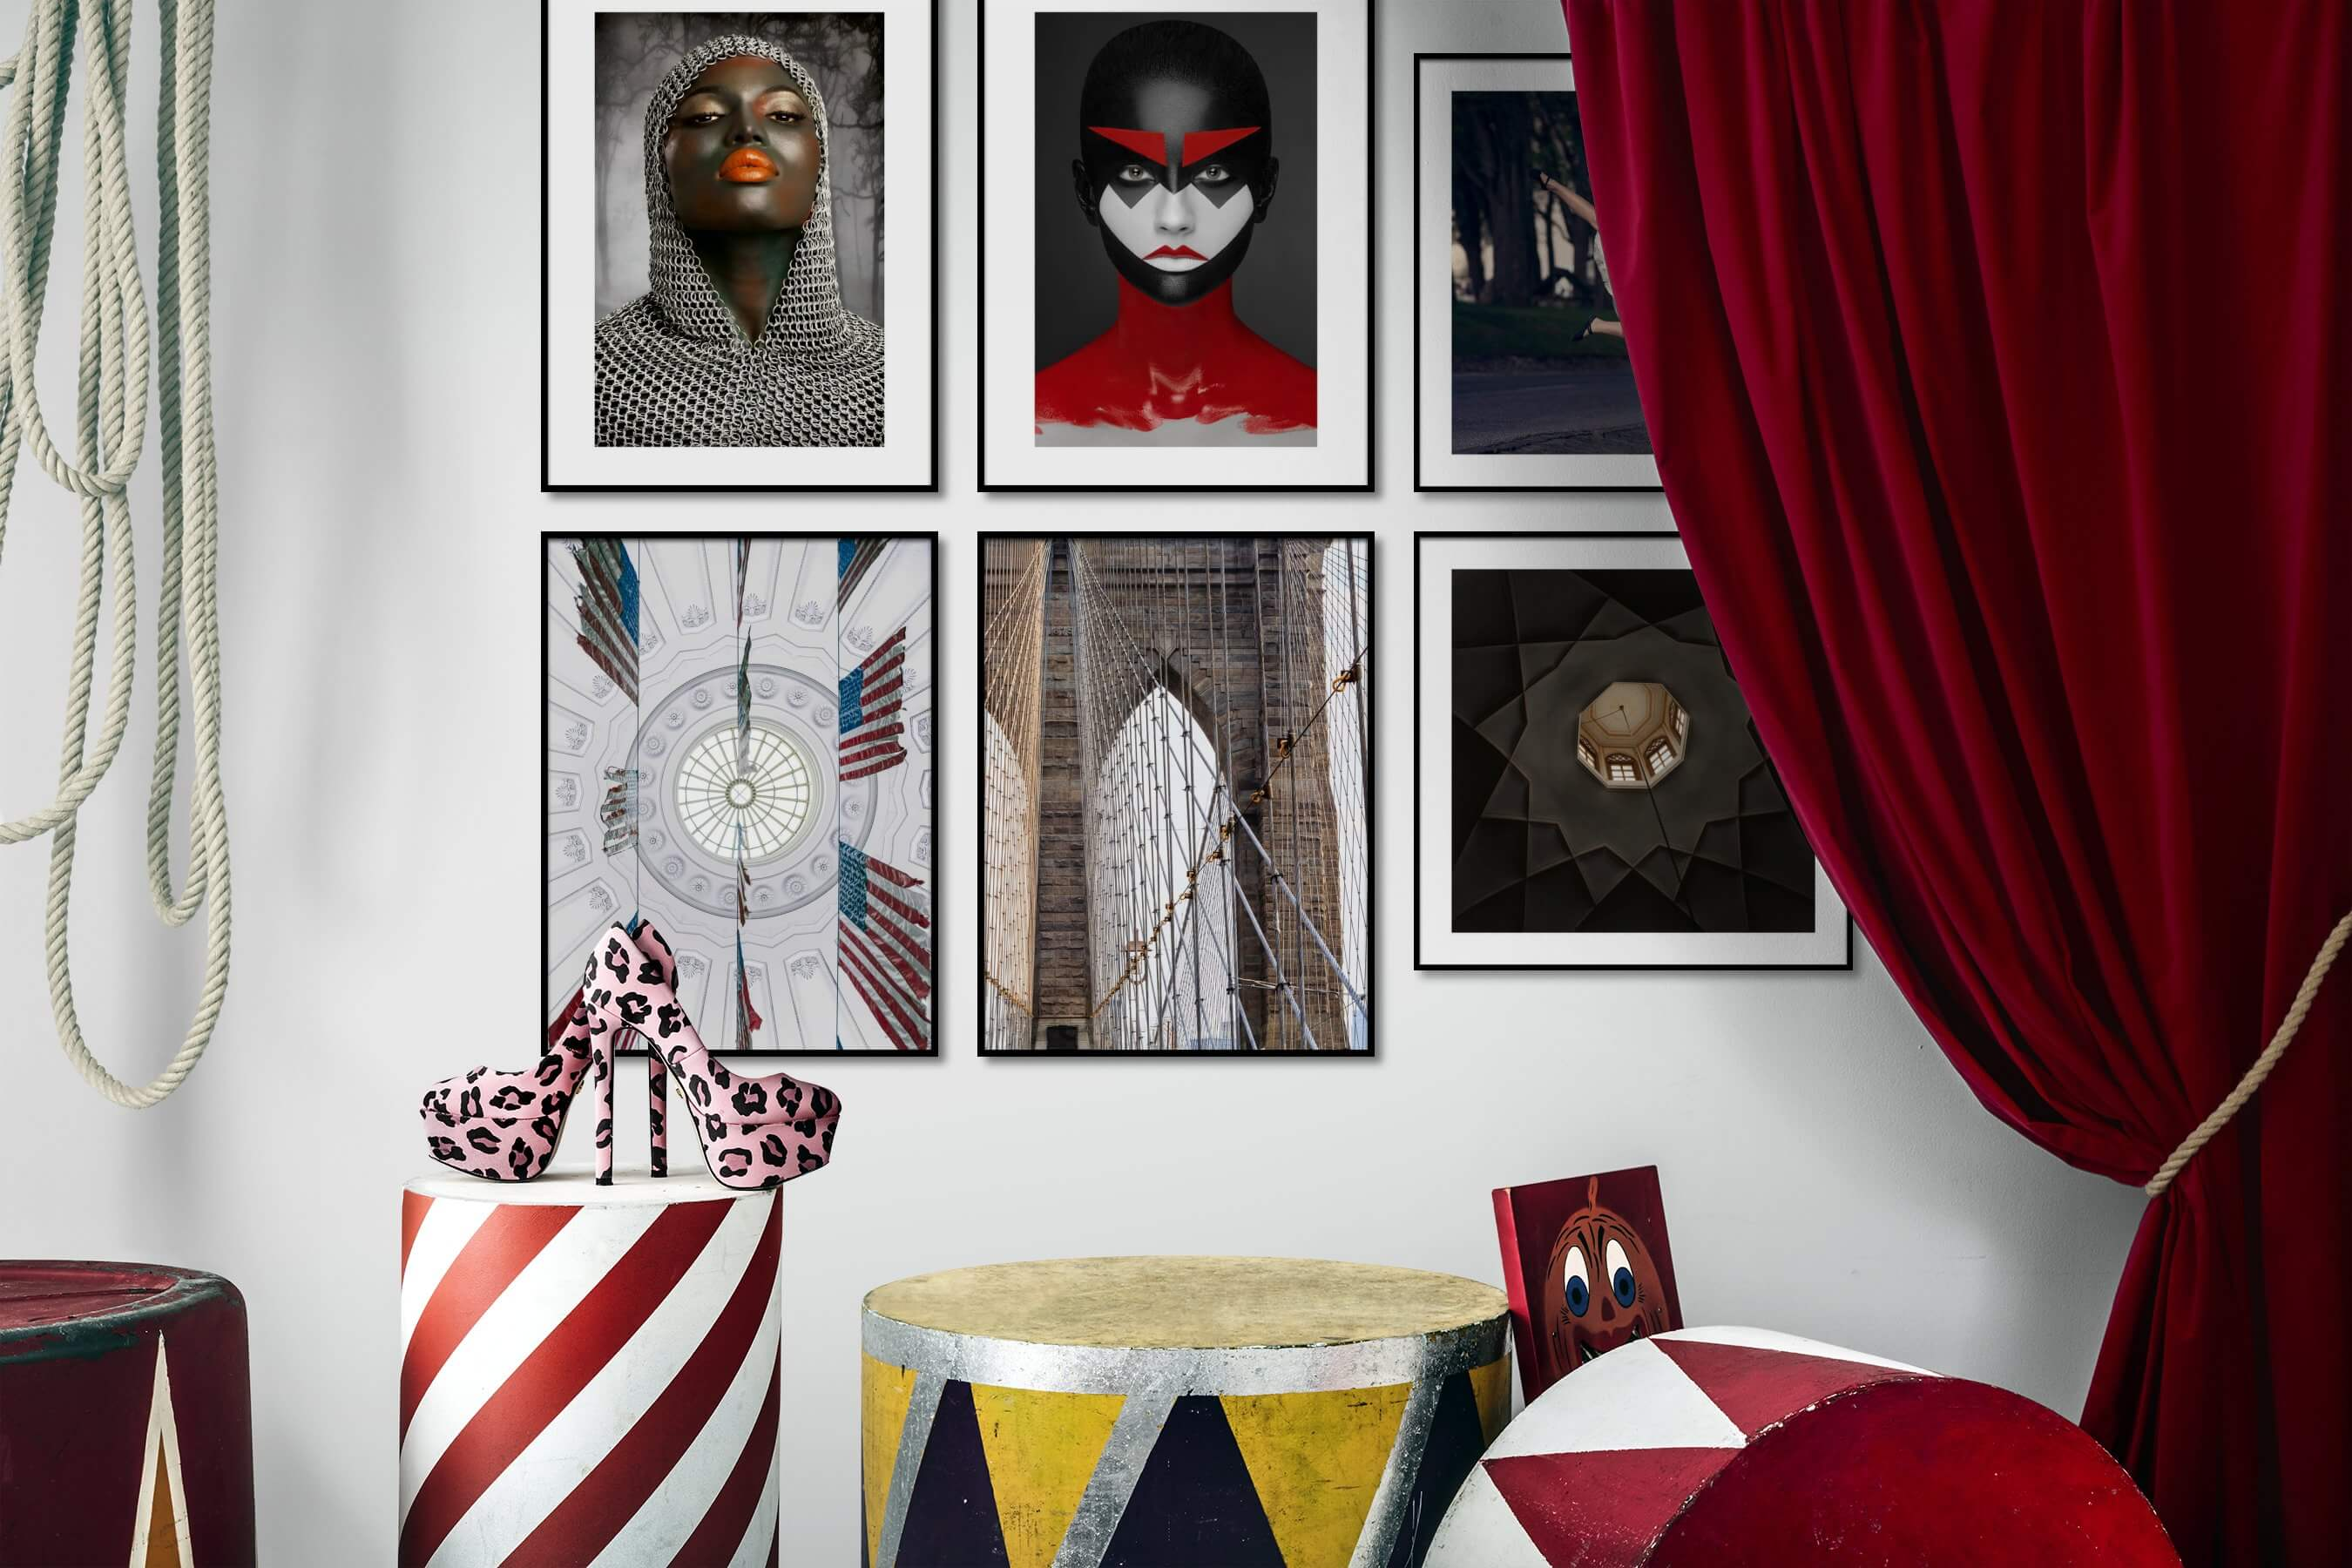 Gallery wall idea with six framed pictures arranged on a wall depicting Fashion & Beauty, Artsy, Colorful, For the Moderate, Americana, For the Maximalist, City Life, and Vintage